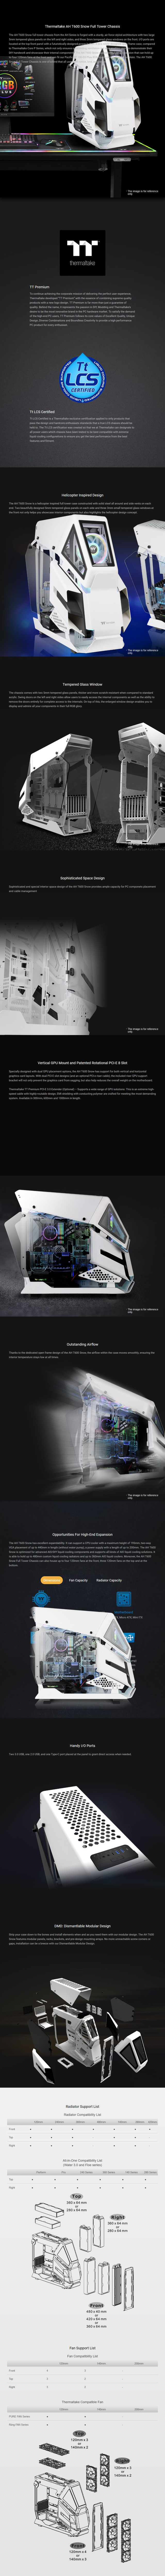 thermaltake-ah-t600-tempered-glass-full-tower-chassis-eatx-snow-ac35268-9.jpg